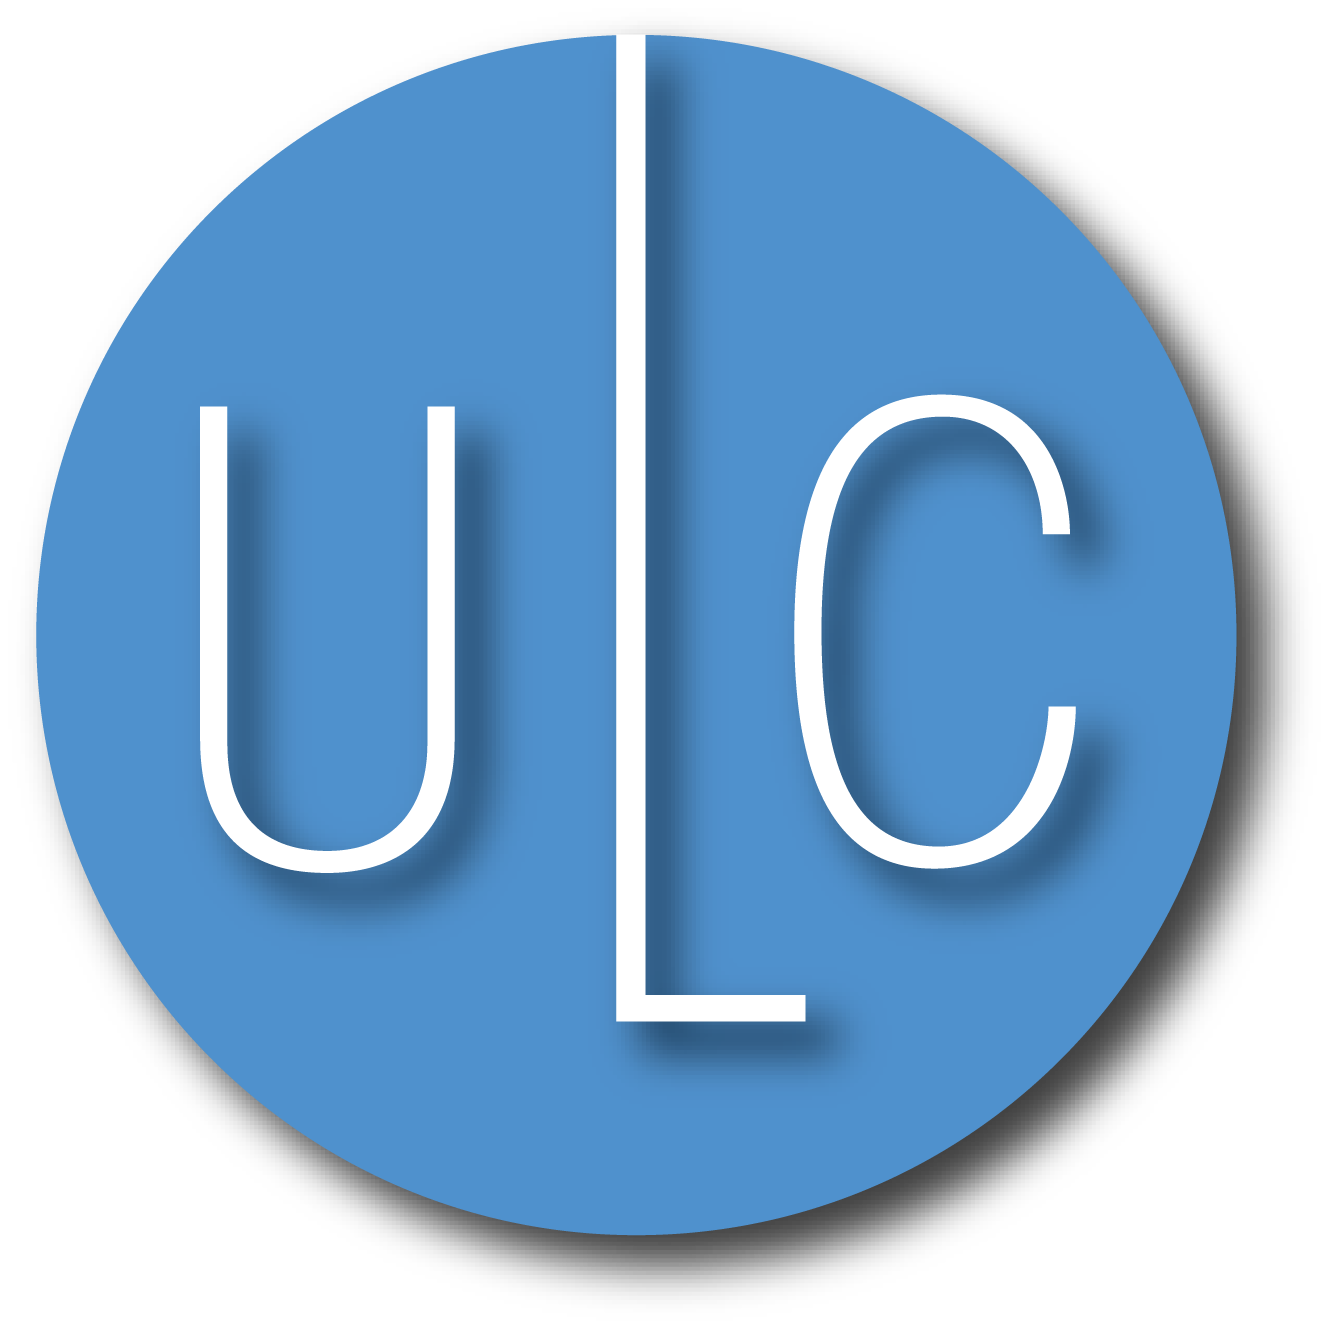 ULC_BlueCircle_NoText_HiRes_3D.png